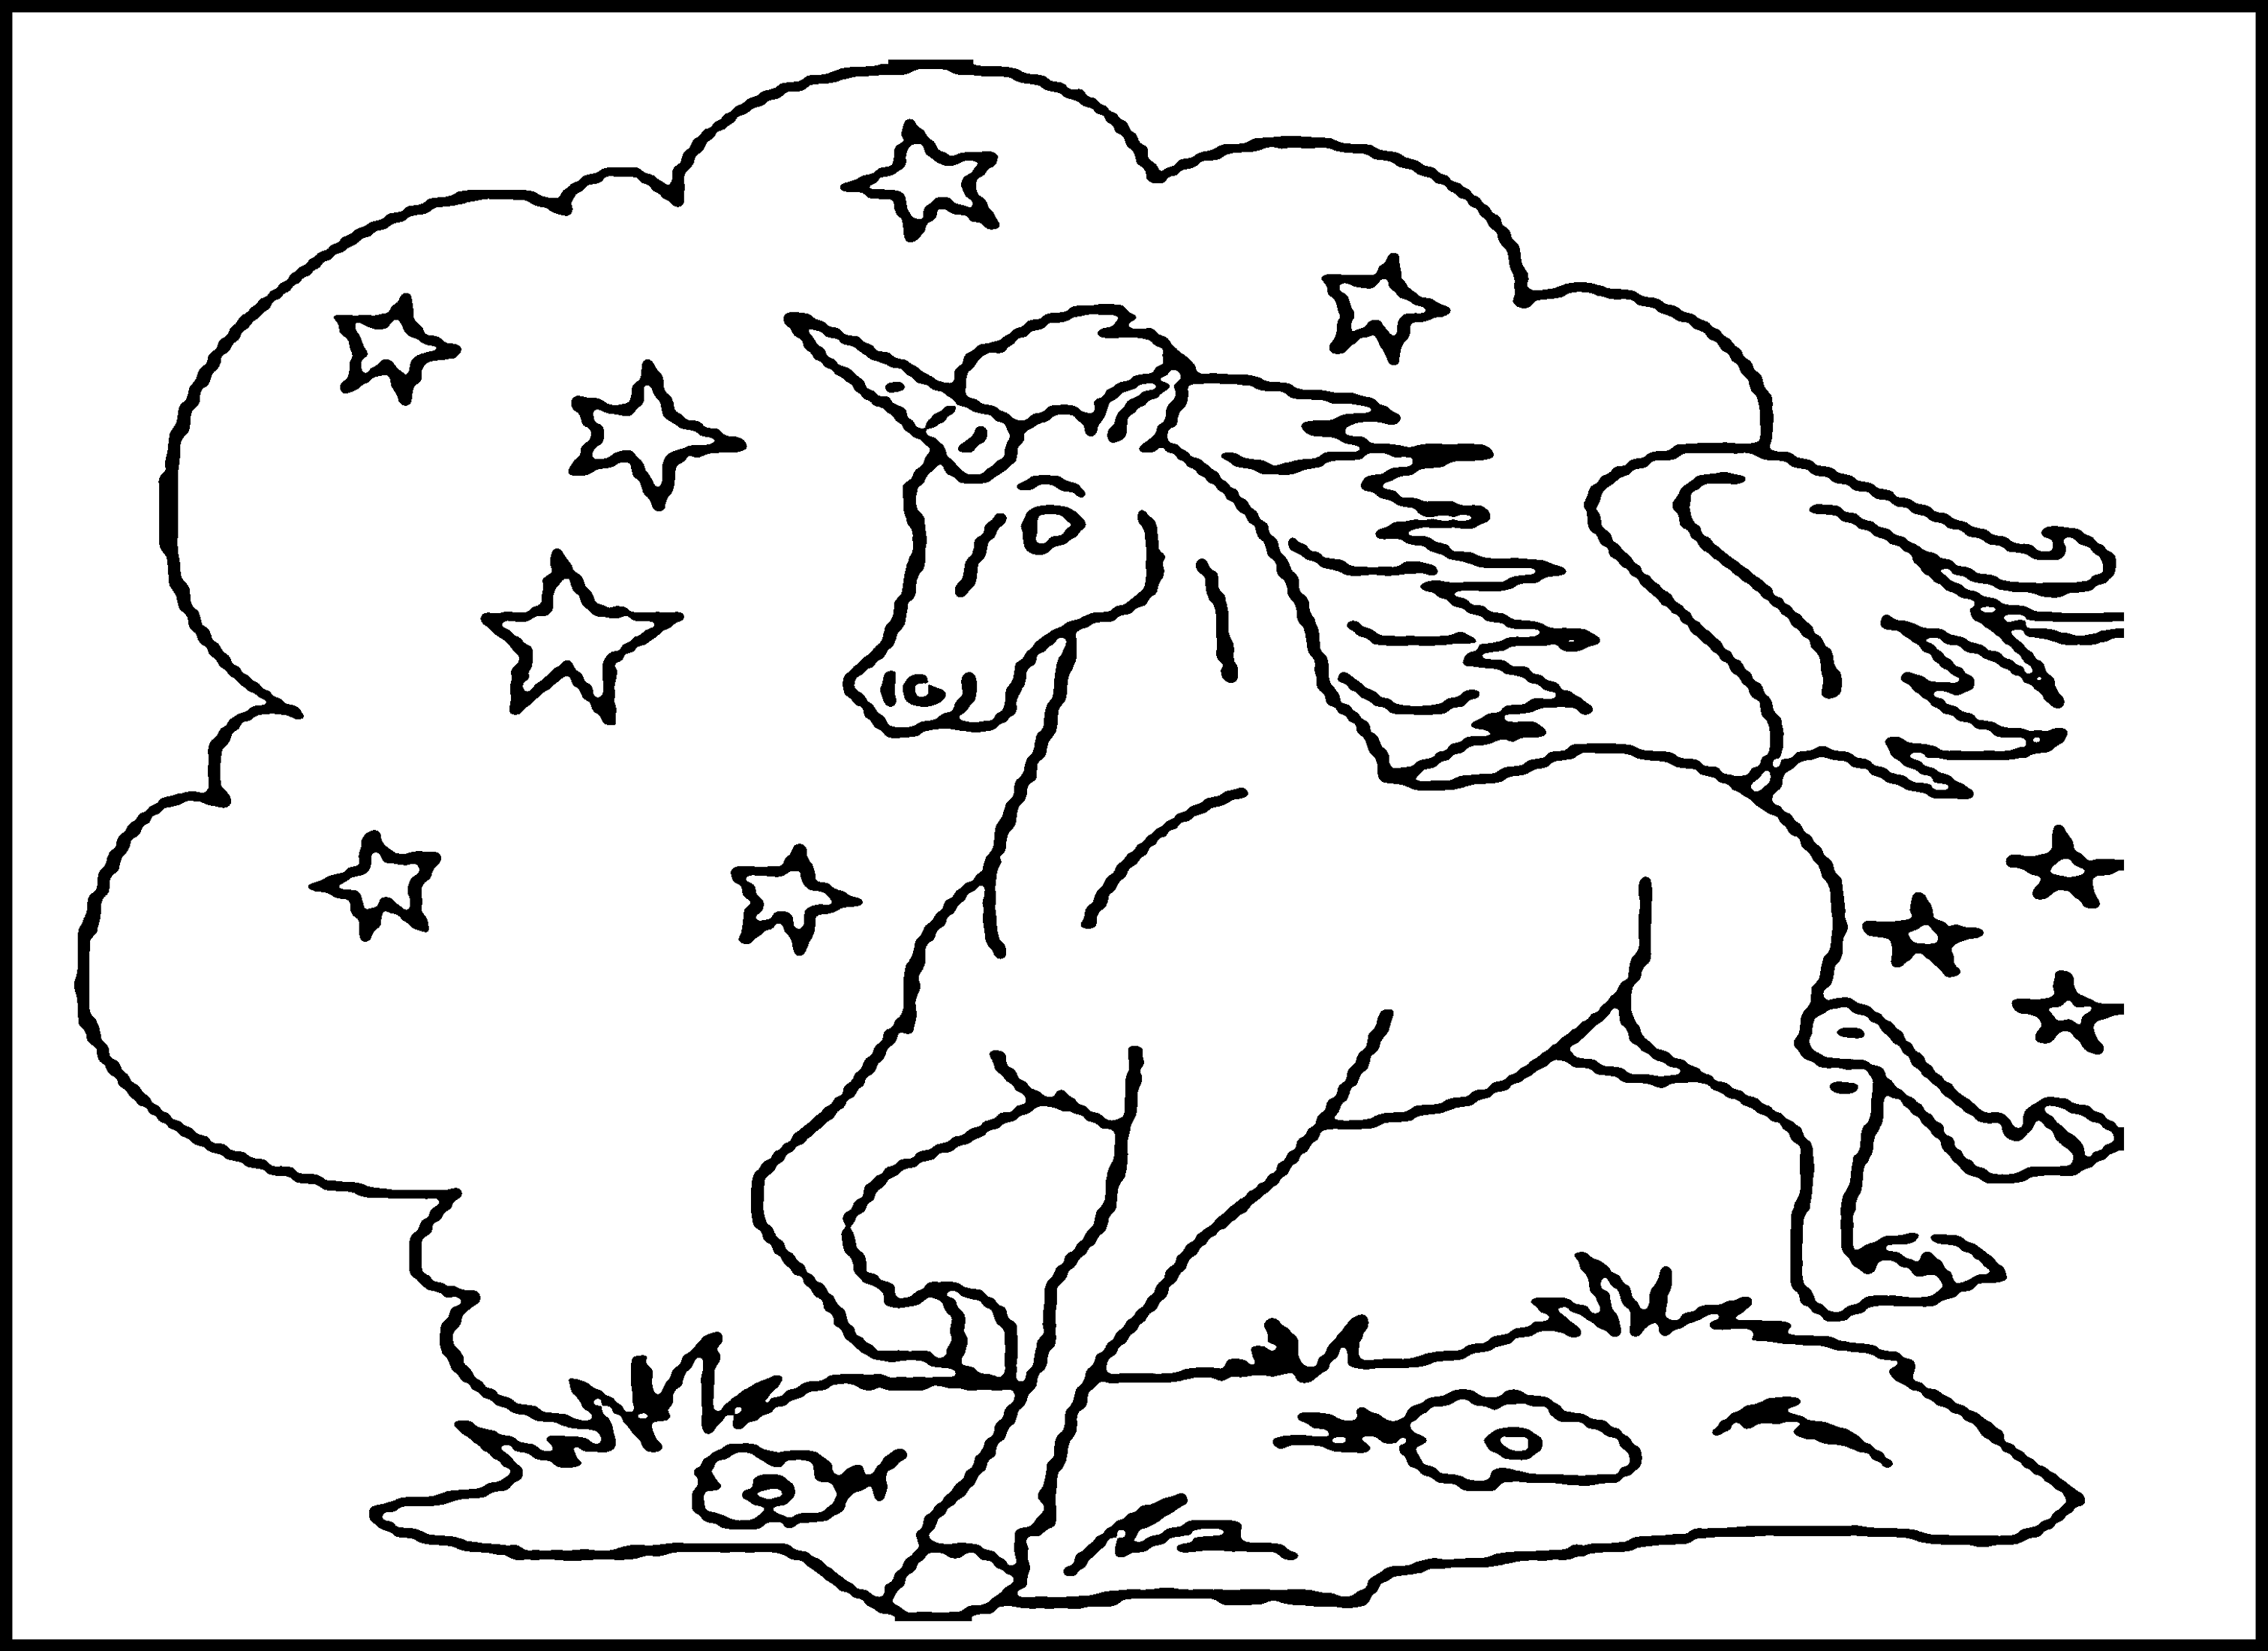 images for coloring for toddlers fun coloring pages for kids coloring pages for kids images for coloring for toddlers